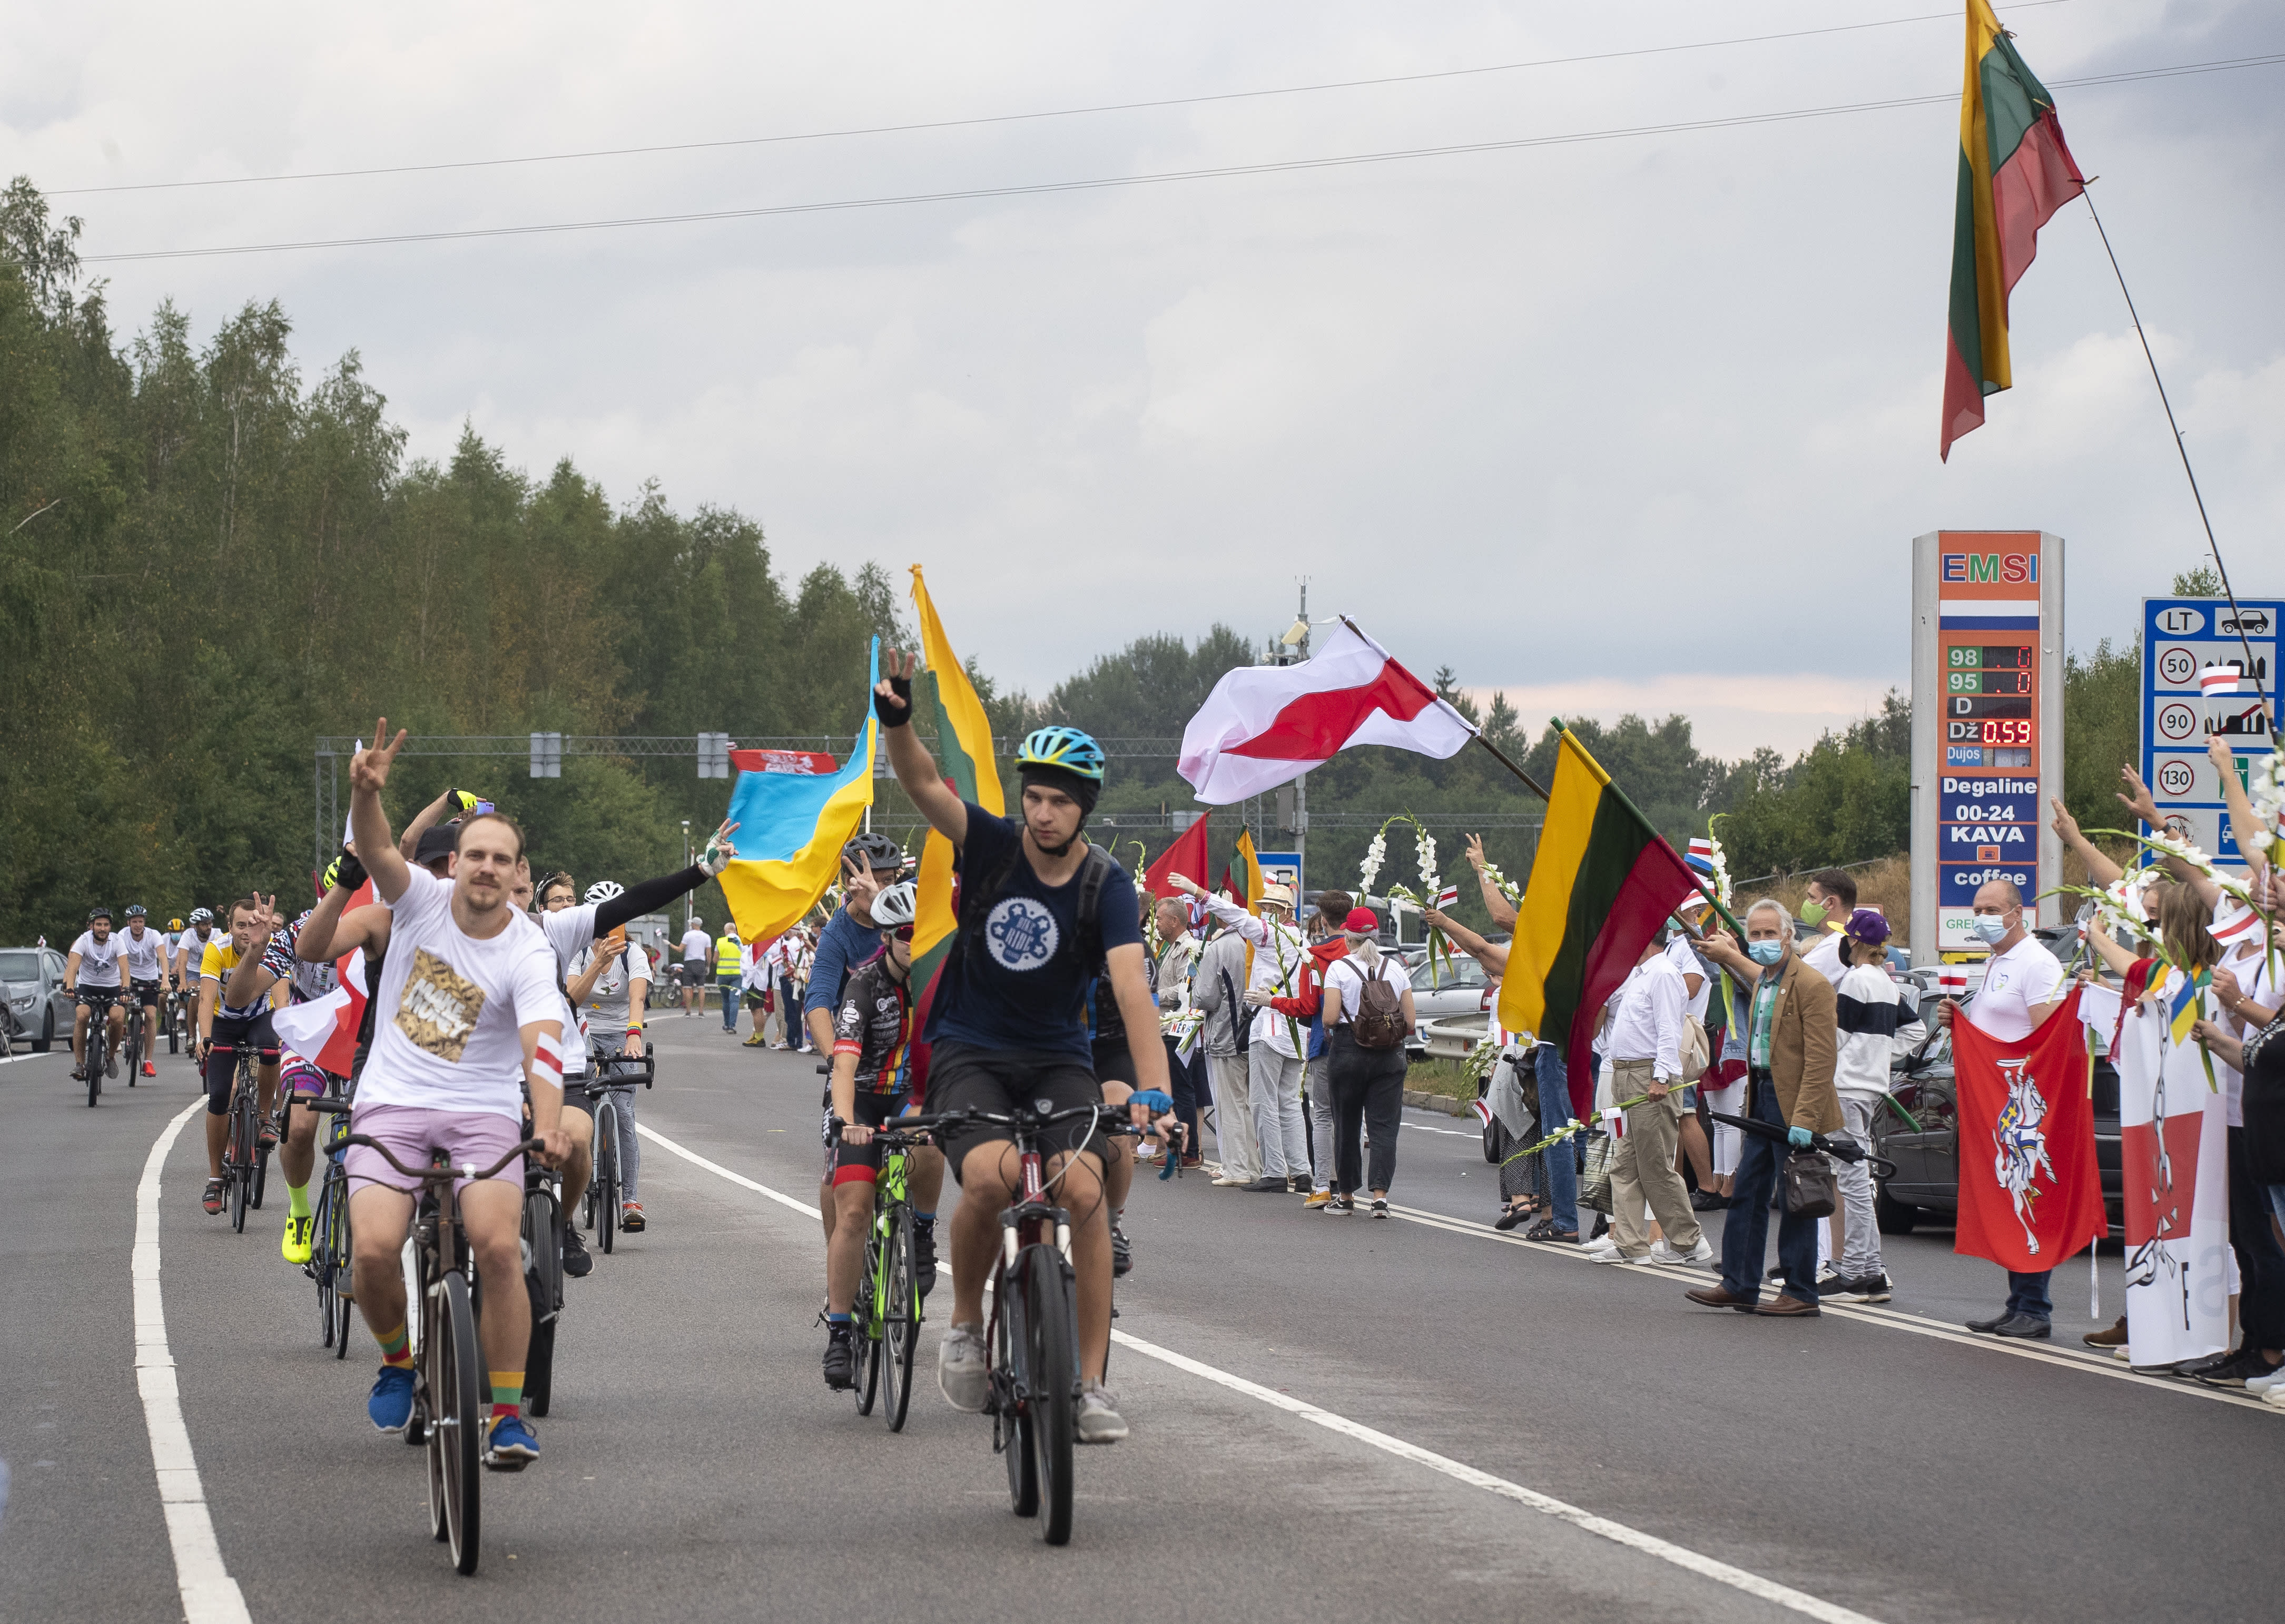 Belarusian opposition supporters ride bicycles, show victory as people create a human chain of about 50,000 strong from Vilnius to the Belarusian border during a protest near Medininkai, Lithuanian-Belarusian border crossing east of Vilnius, Lithuania, Sunday, Aug. 23, 2020. In Aug. 23, 1989, around 2 million Lithuanians, Latvians, and Estonians joined forces in a living 600 km (375 mile) long human chain Baltic Way, thus demonstrating their desire to be free. Now, Lithuania is expressing solidarity with the people of Belarus, who are fighting for freedom today. (AP Photo/Mindaugas Kulbis)